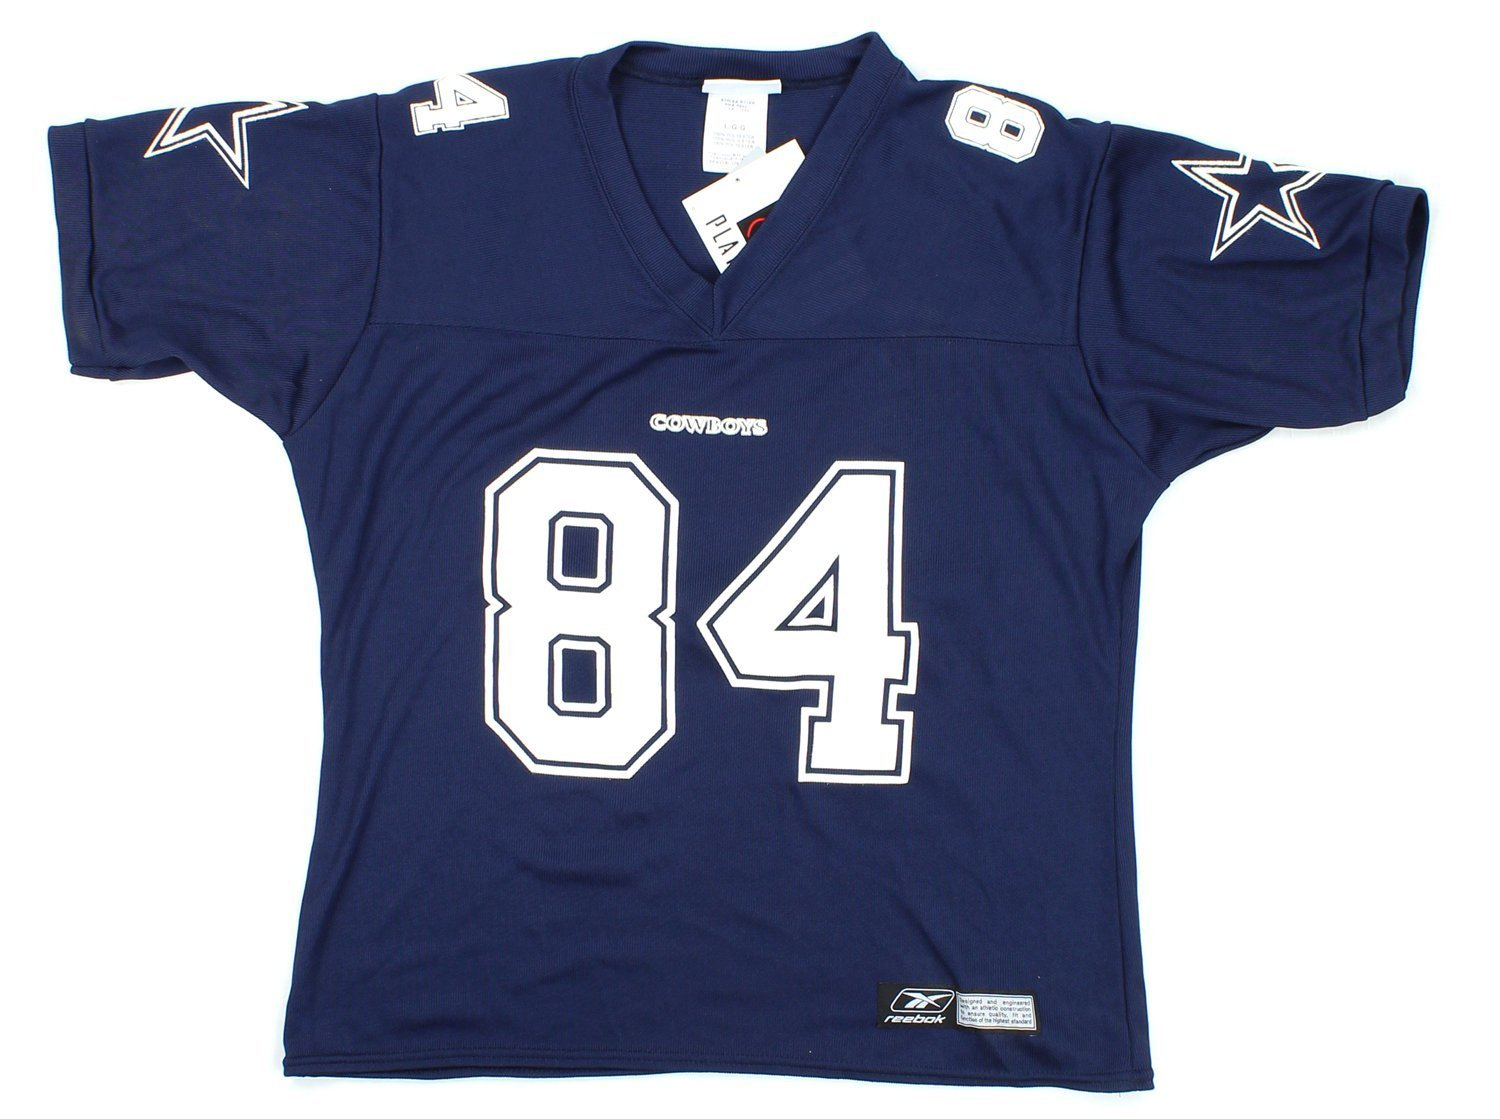 6863d6ac695 Get Quotations · Dallas Cowboys Joey Galloway #84 NFL Womens Vintage  Replica Jersey, Navy